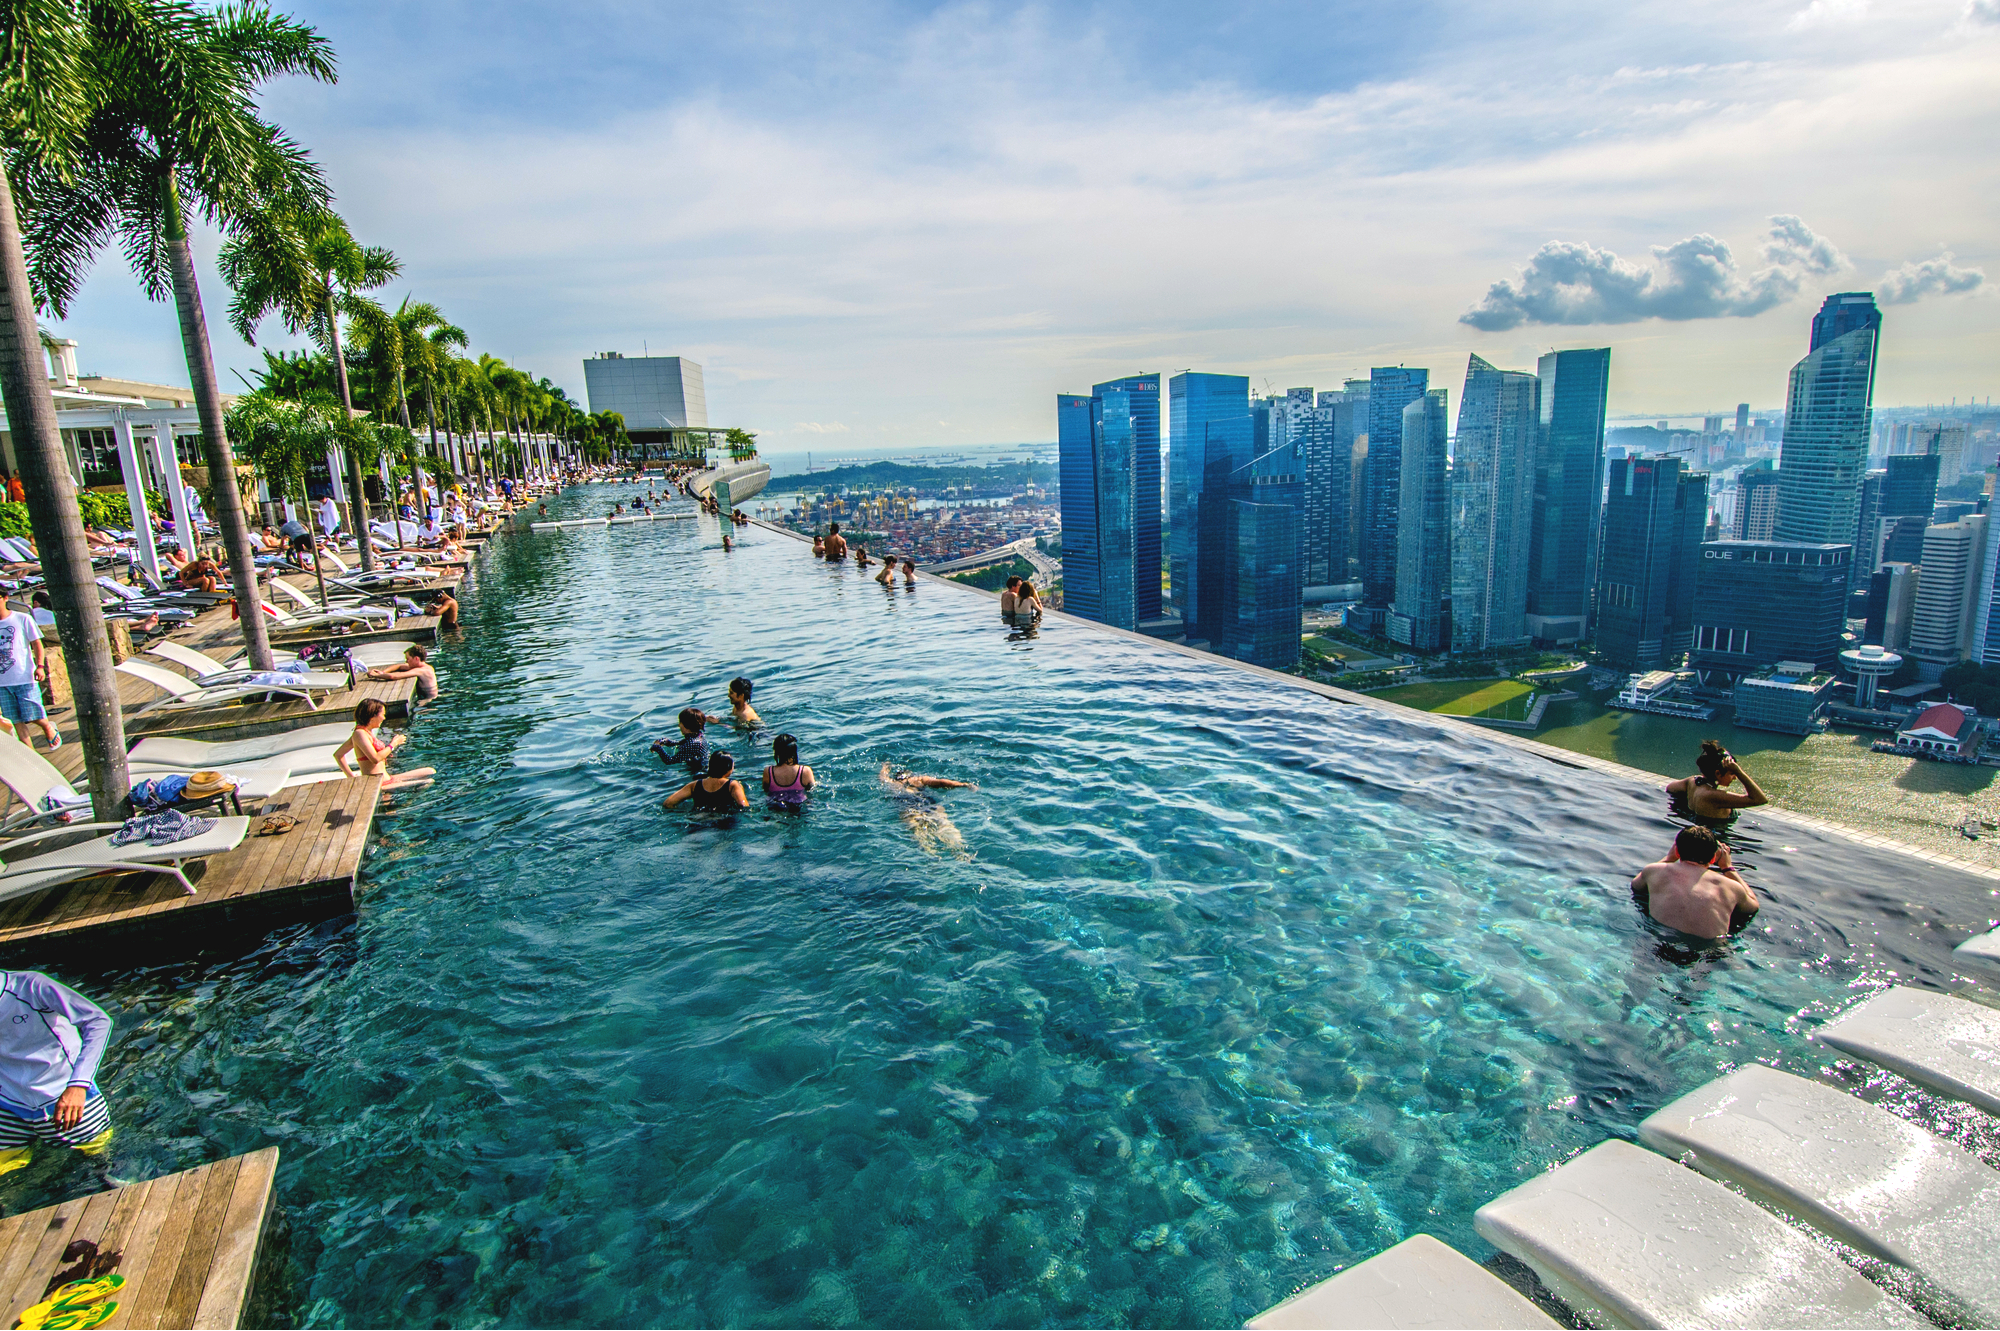 People swimming in the rooftop infinity pool at Marina Bay Sands, overlooking the Singapore skyline